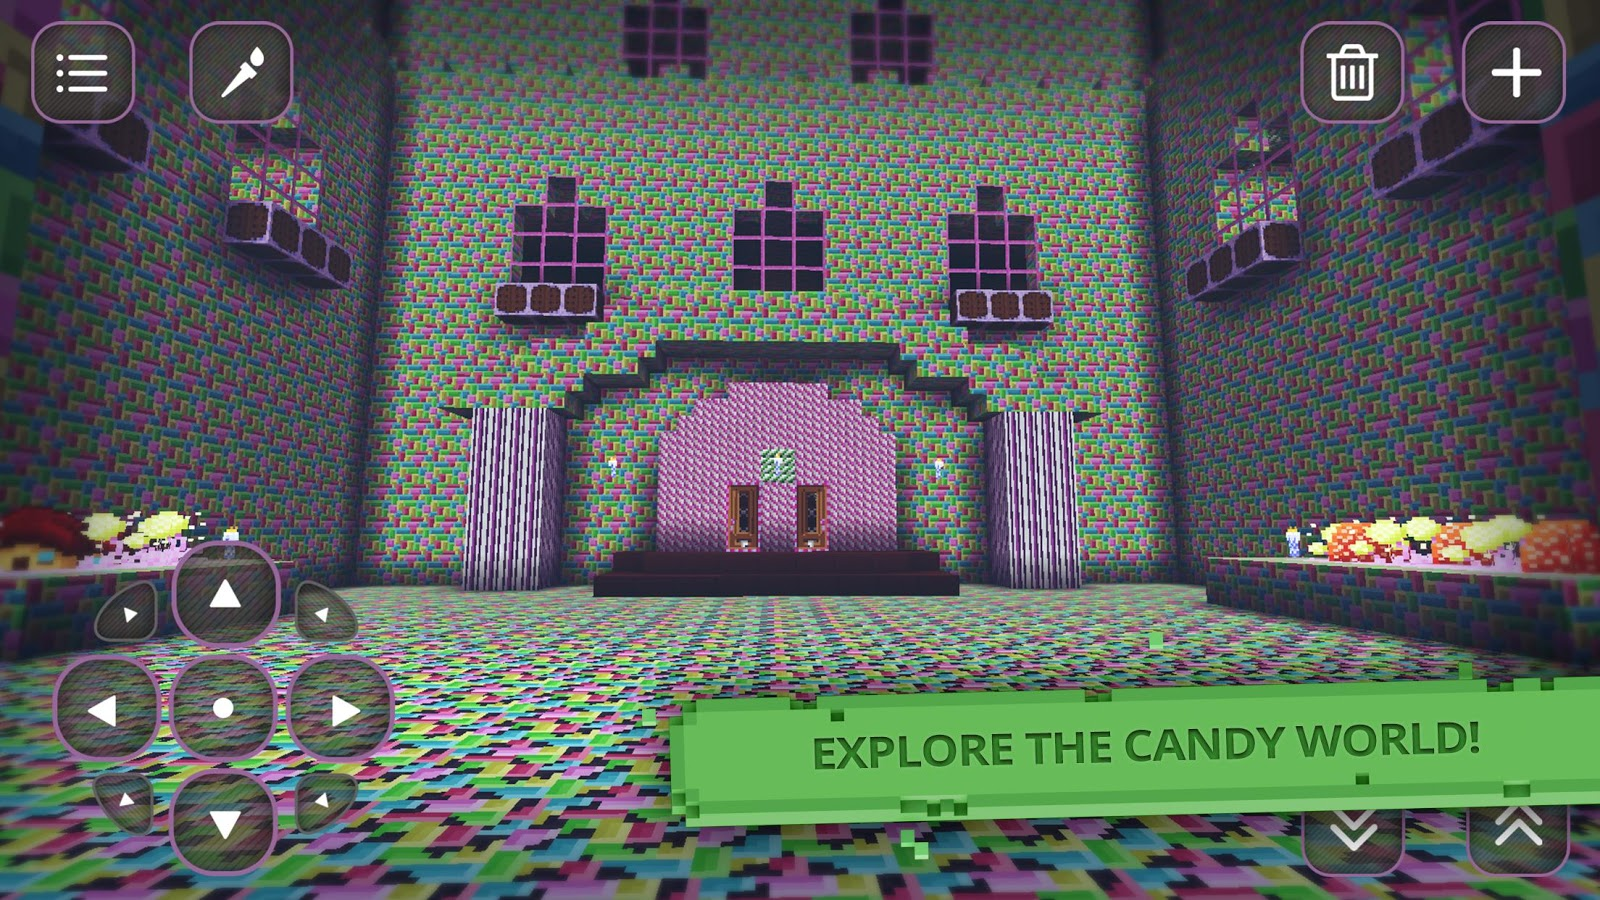 Candy girls craft exploration android apps on google play candy girls craft exploration screenshot ccuart Image collections